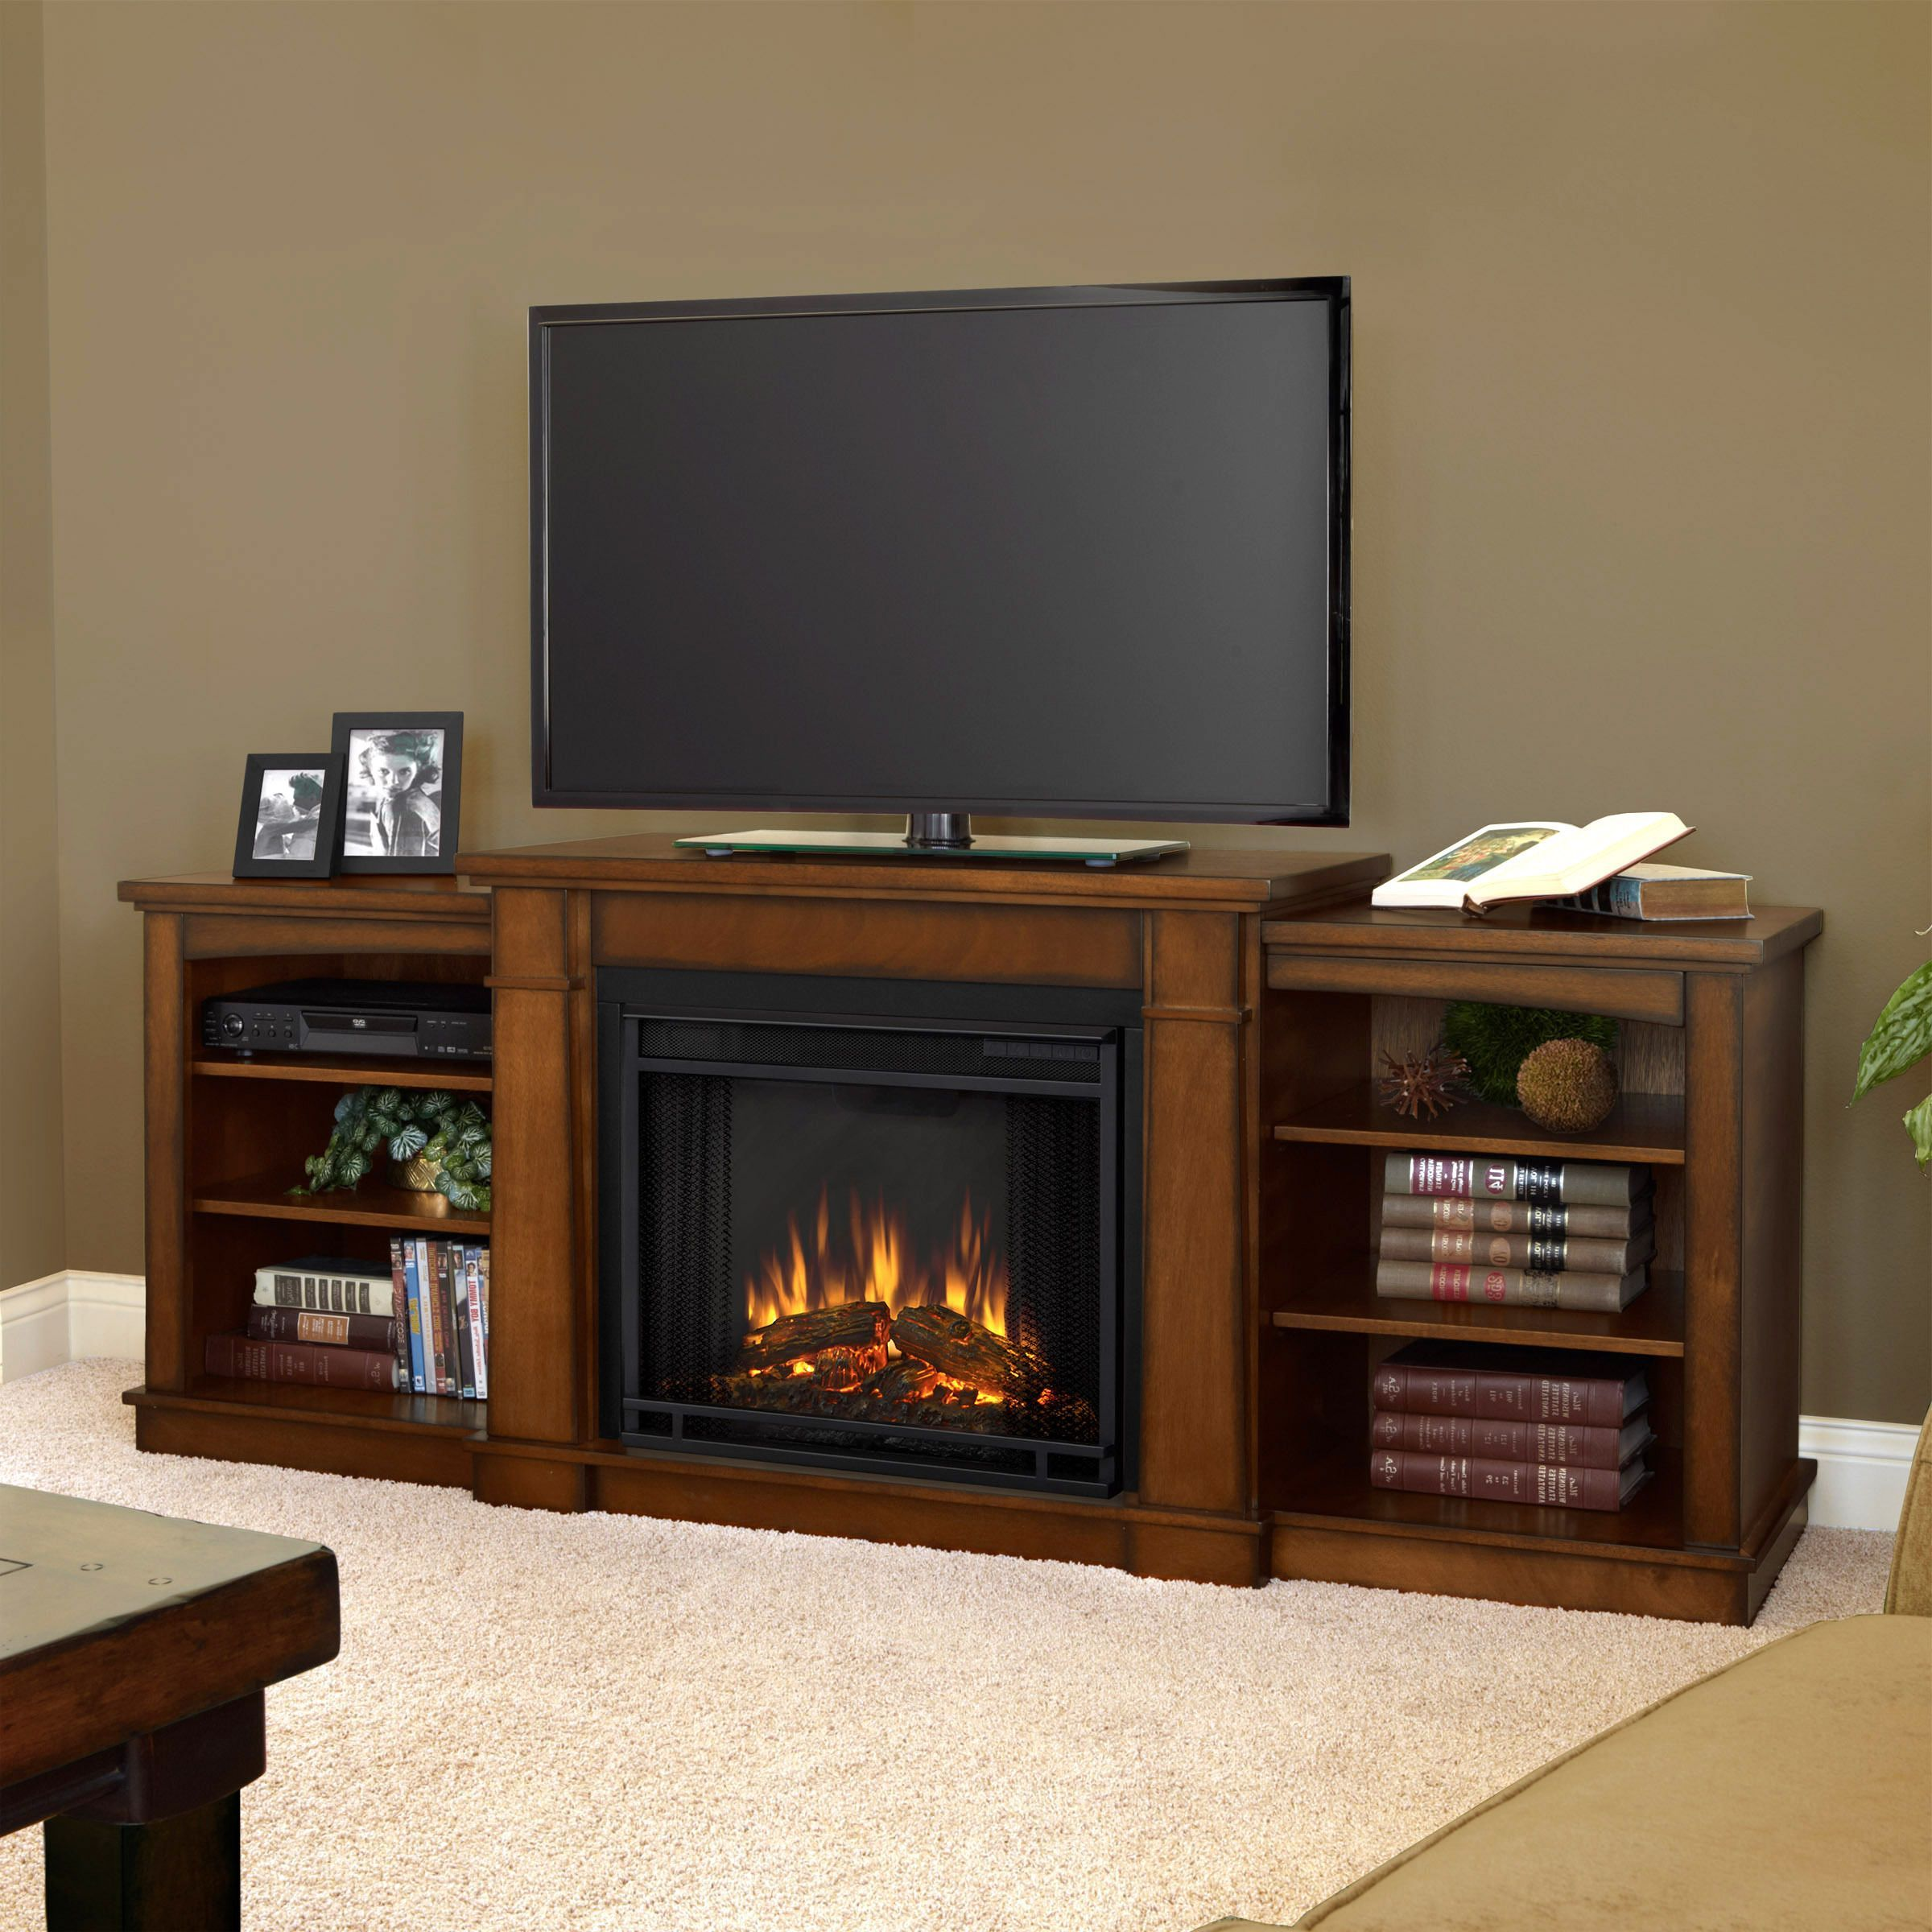 Snuggle up to modern convenience with this electric fireplace and